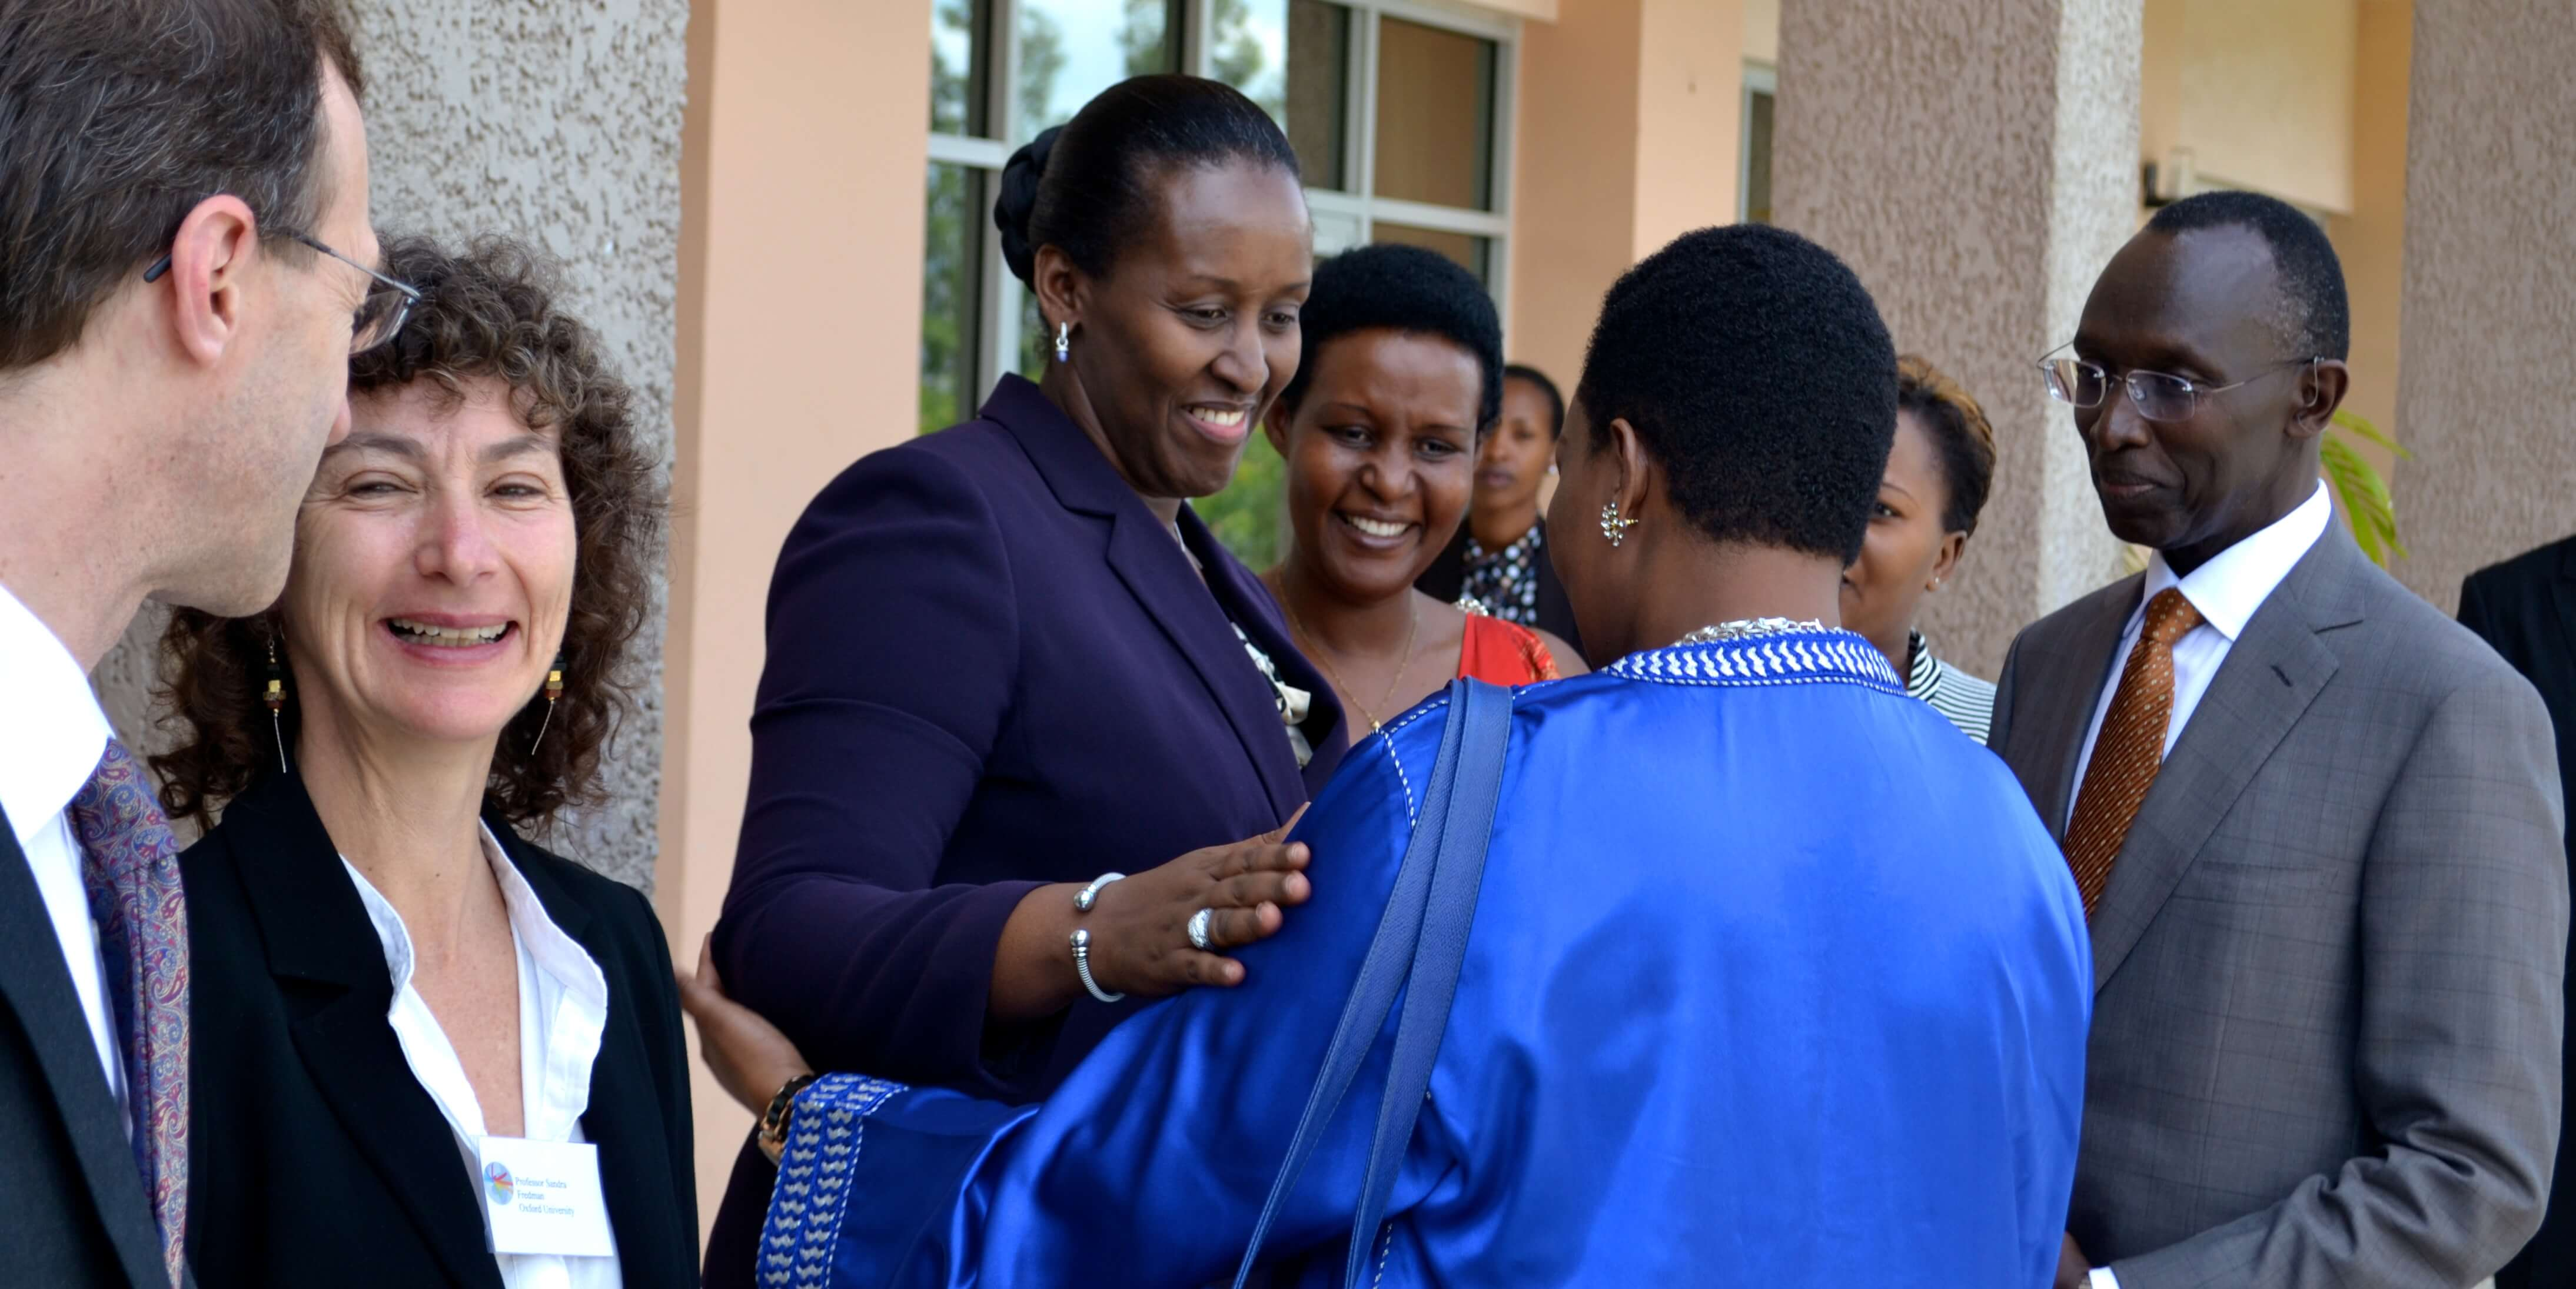 First Lady of Rwanda – Women and Poverty: A Human Rights Approach